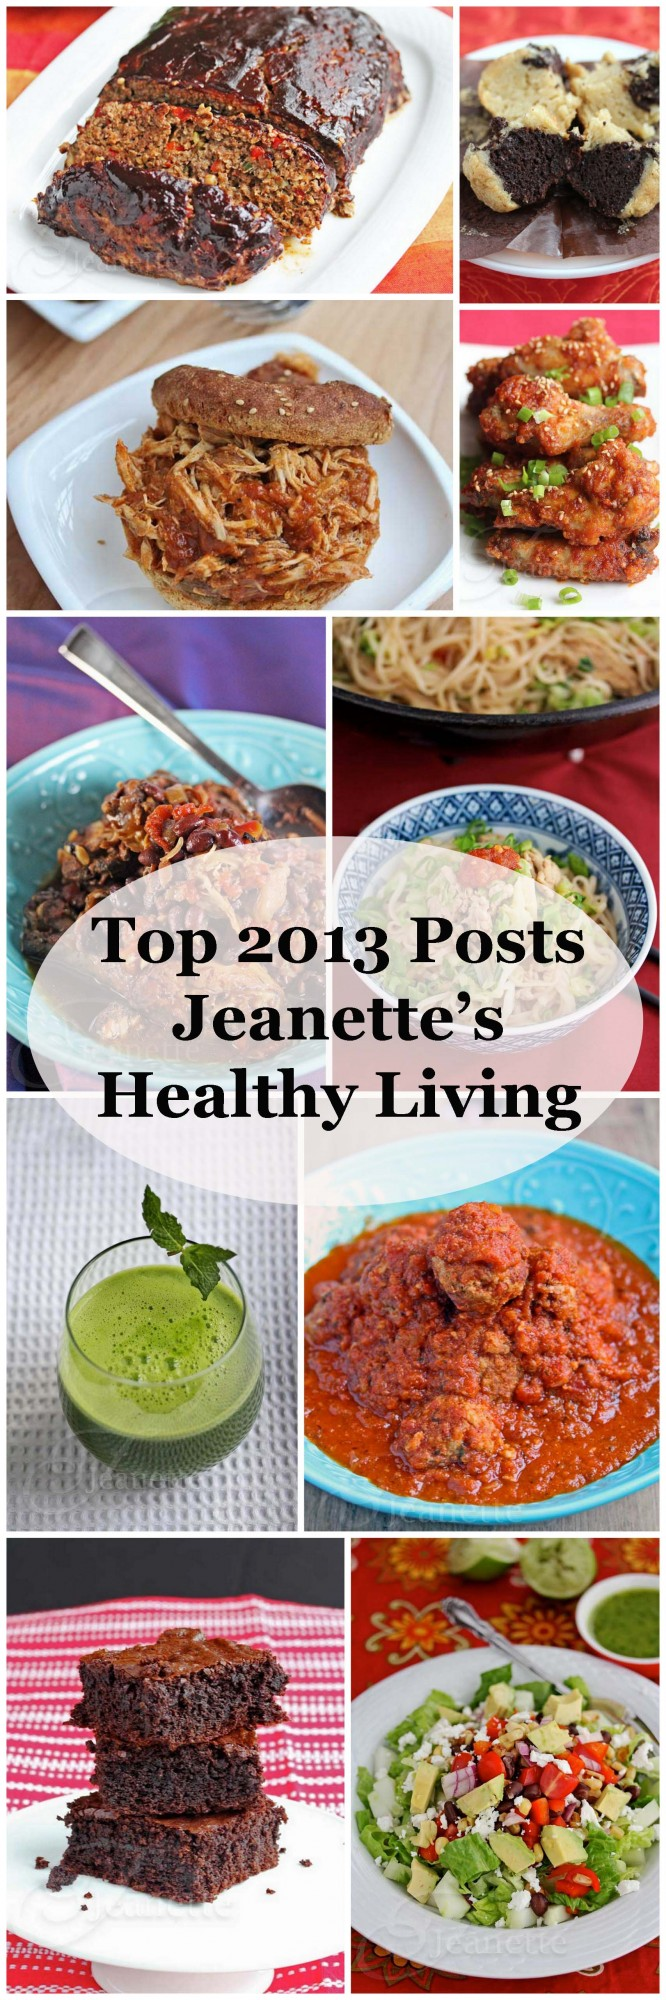 Top 2013 Posts Jeanette's Healthy Living